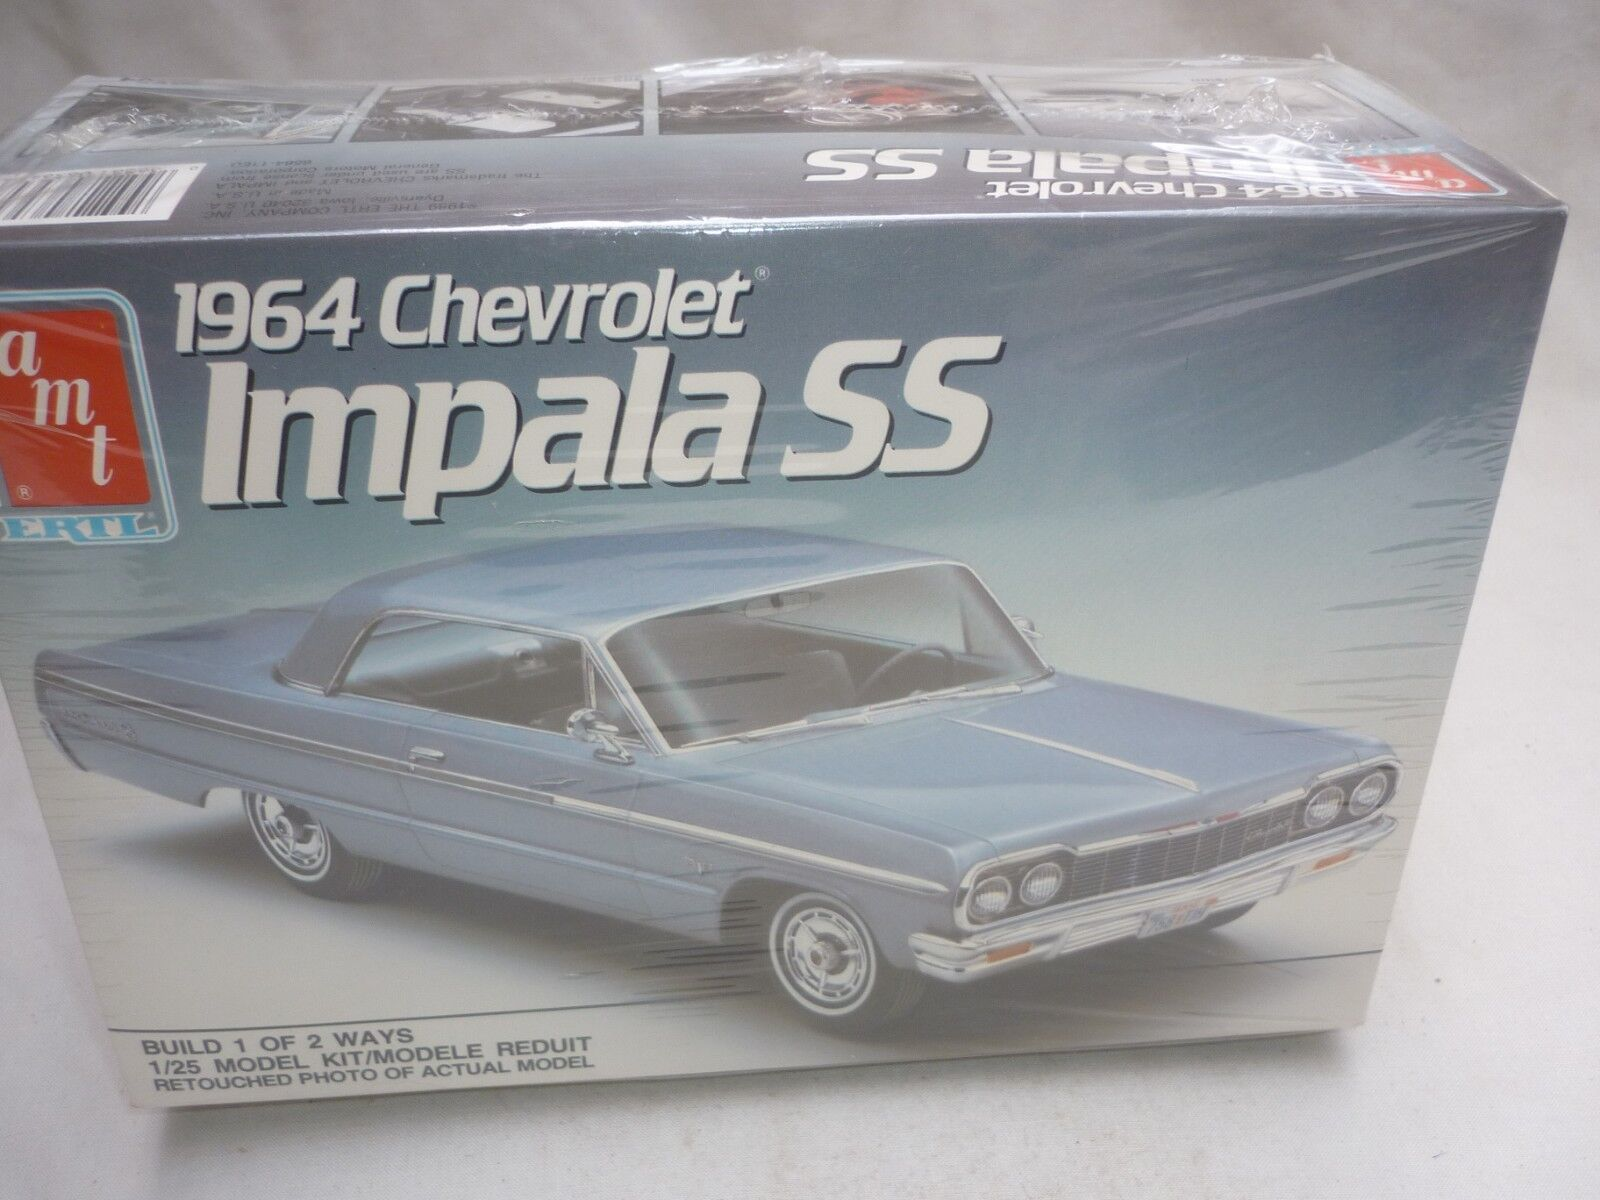 AMT   Ertl un-opened plastic kit of a 1964 Chevrolet Impala ss, Factory sealed